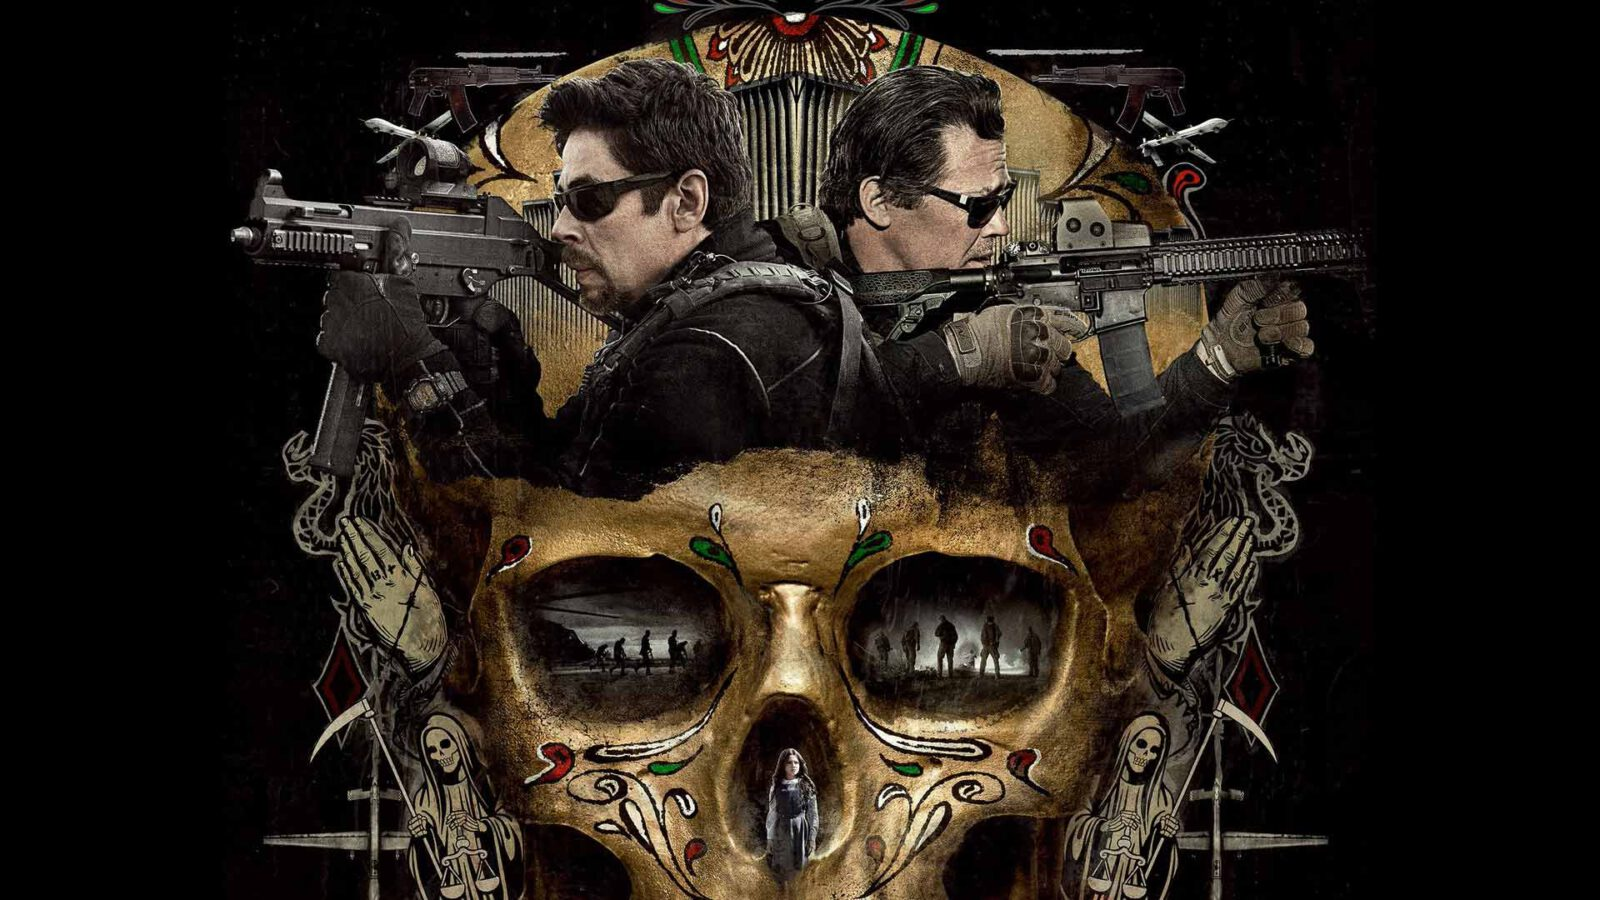 Filmrecensie - Sicario: Day of the Soldado (2018)